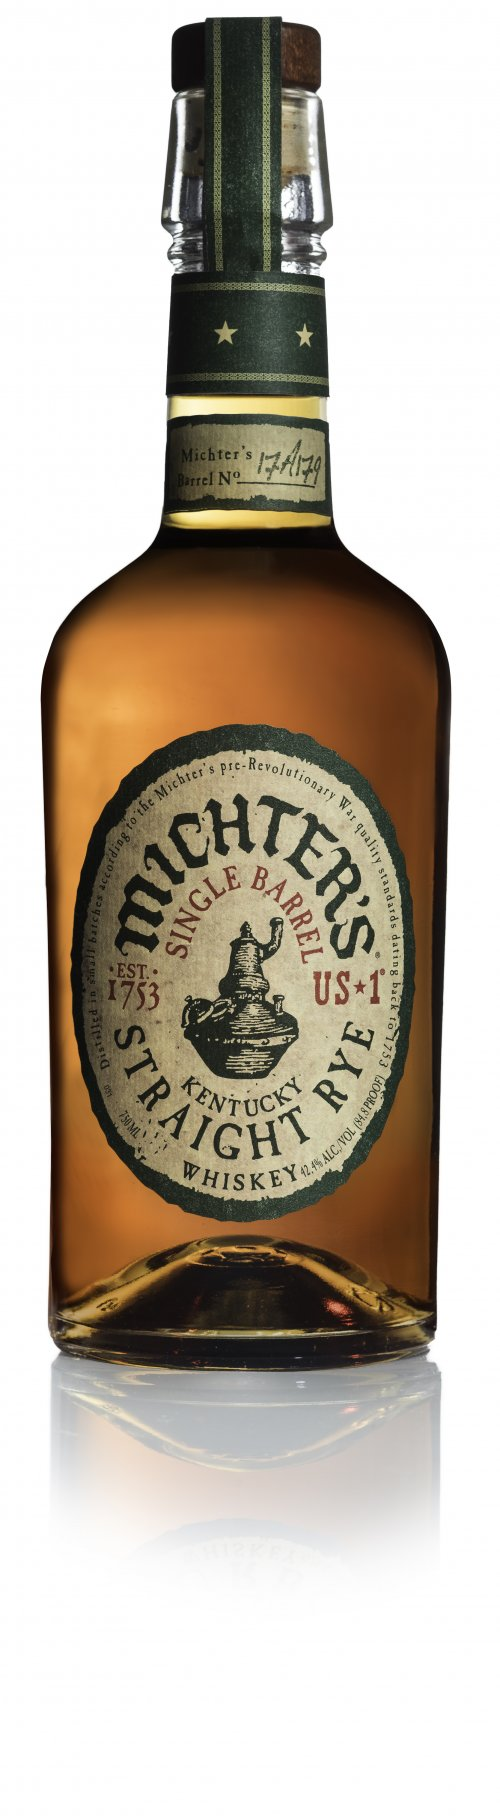 Michters US*1 Kentucky Straight Single Barrel Rye